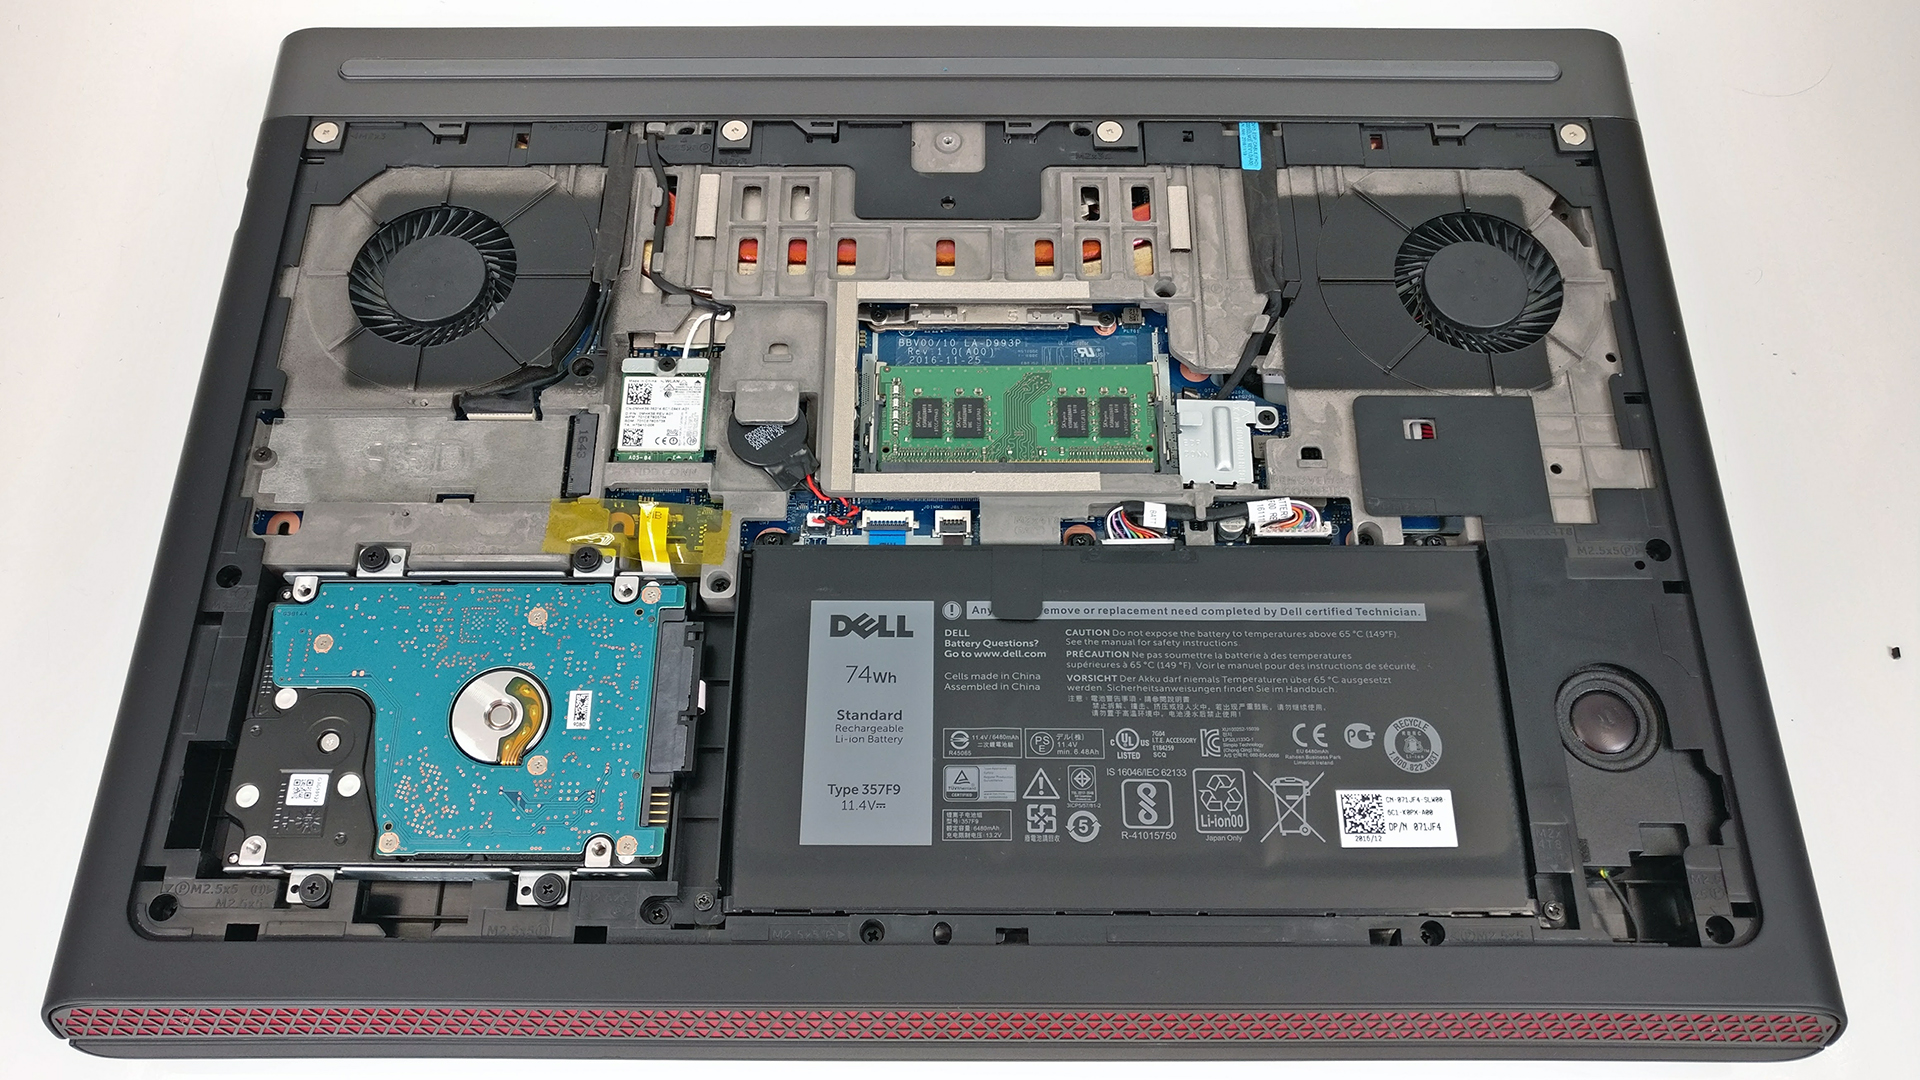 Inside Dell Inspiron 15 7567 Disassembly Internal Photos And Upgrade Options on memory hard drive